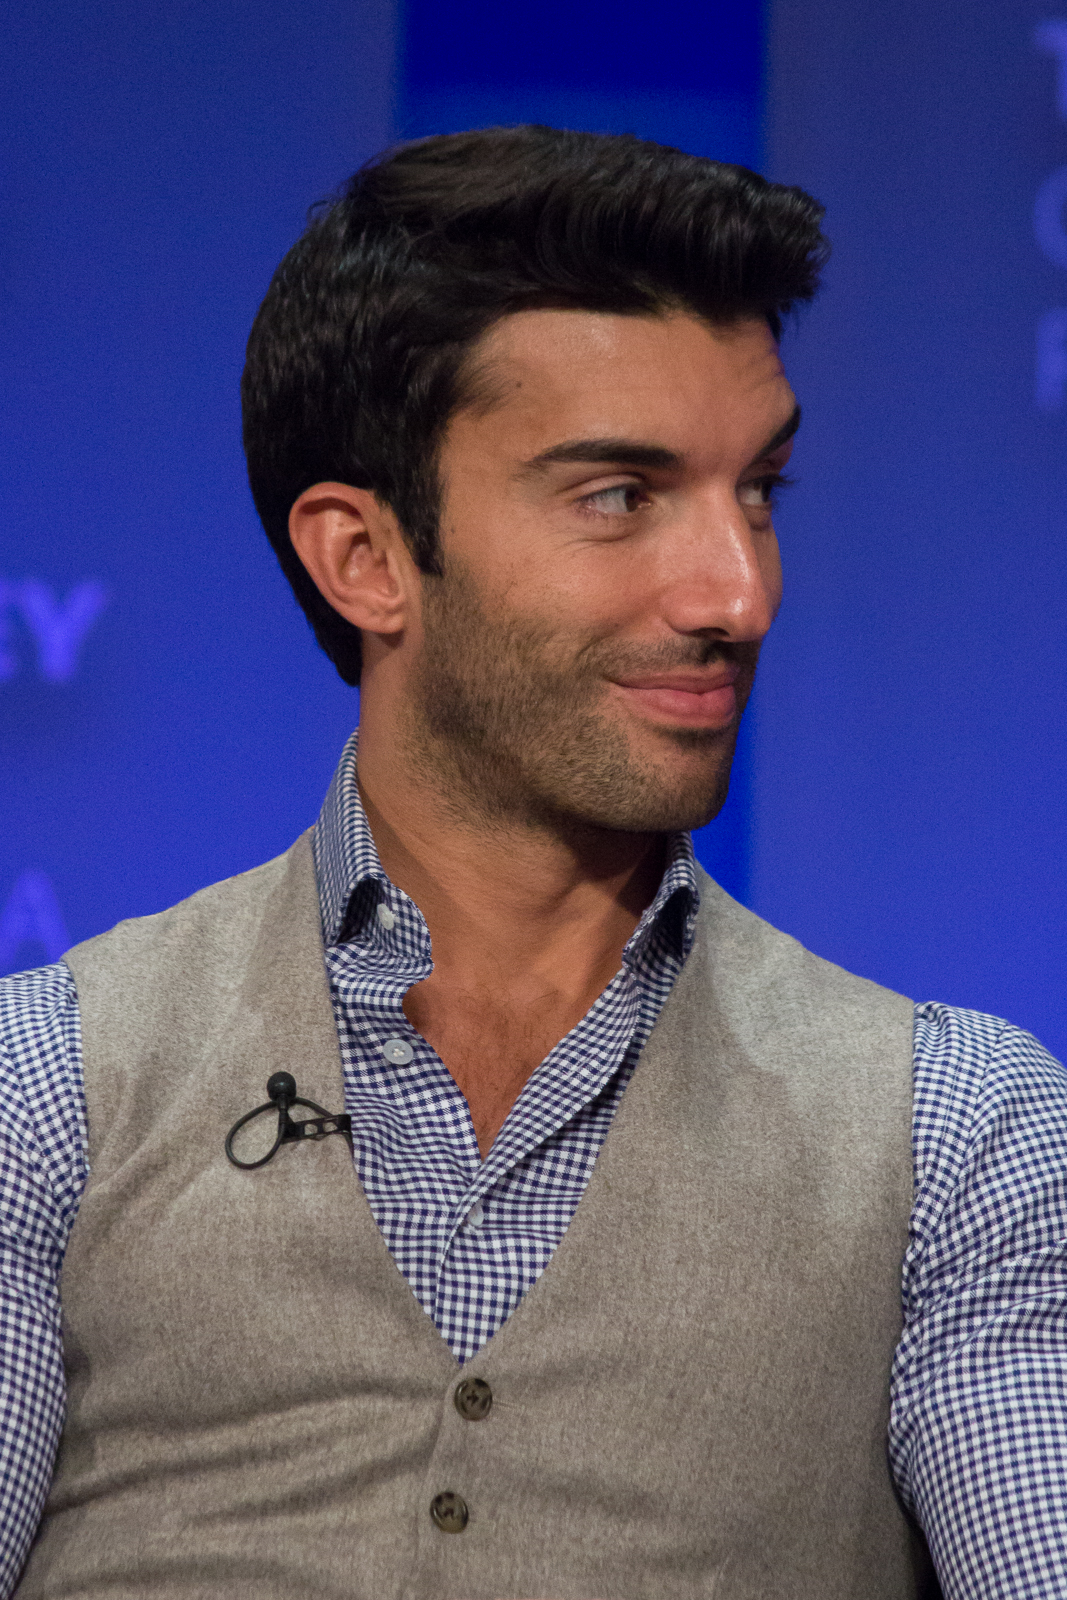 justin baldoni and emily foxlerjustin baldoni wife, justin baldoni insta, justin baldoni email, justin baldoni interview, justin baldoni instagram, justin baldoni movies, justin baldoni jane the virgin, justin baldoni movies and tv shows, justin baldoni height weight, justin baldoni daughter, justin baldoni, justin baldoni proposal, justin baldoni wedding, justin baldoni eye, justin baldoni twitter, justin baldoni height, justin baldoni and emily foxler, justin baldoni wiki, justin baldoni imdb, justin baldoni and gina rodriguez